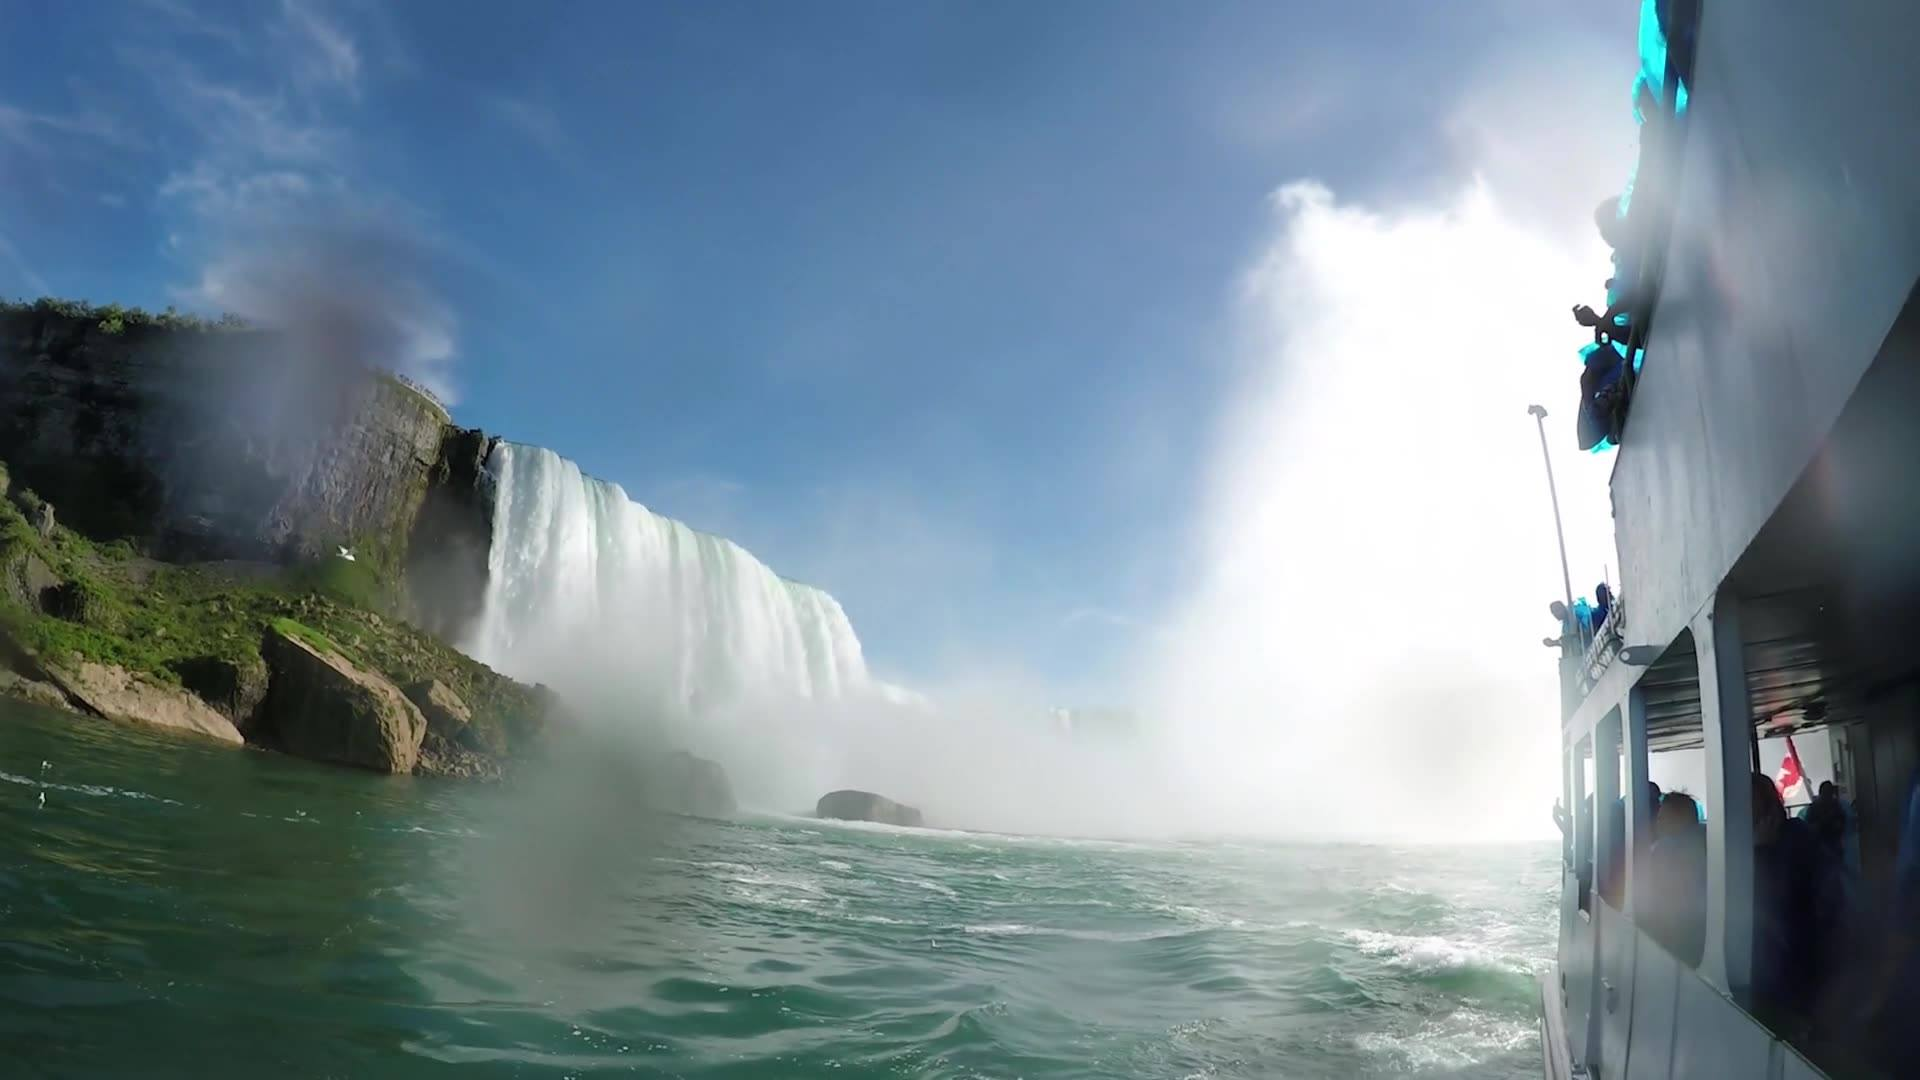 the natural wonders of niagra falls One of the world's most beautiful natural attractions, iguazu falls stretches  200  feet, iguazu falls stands taller and wider than niagara falls.